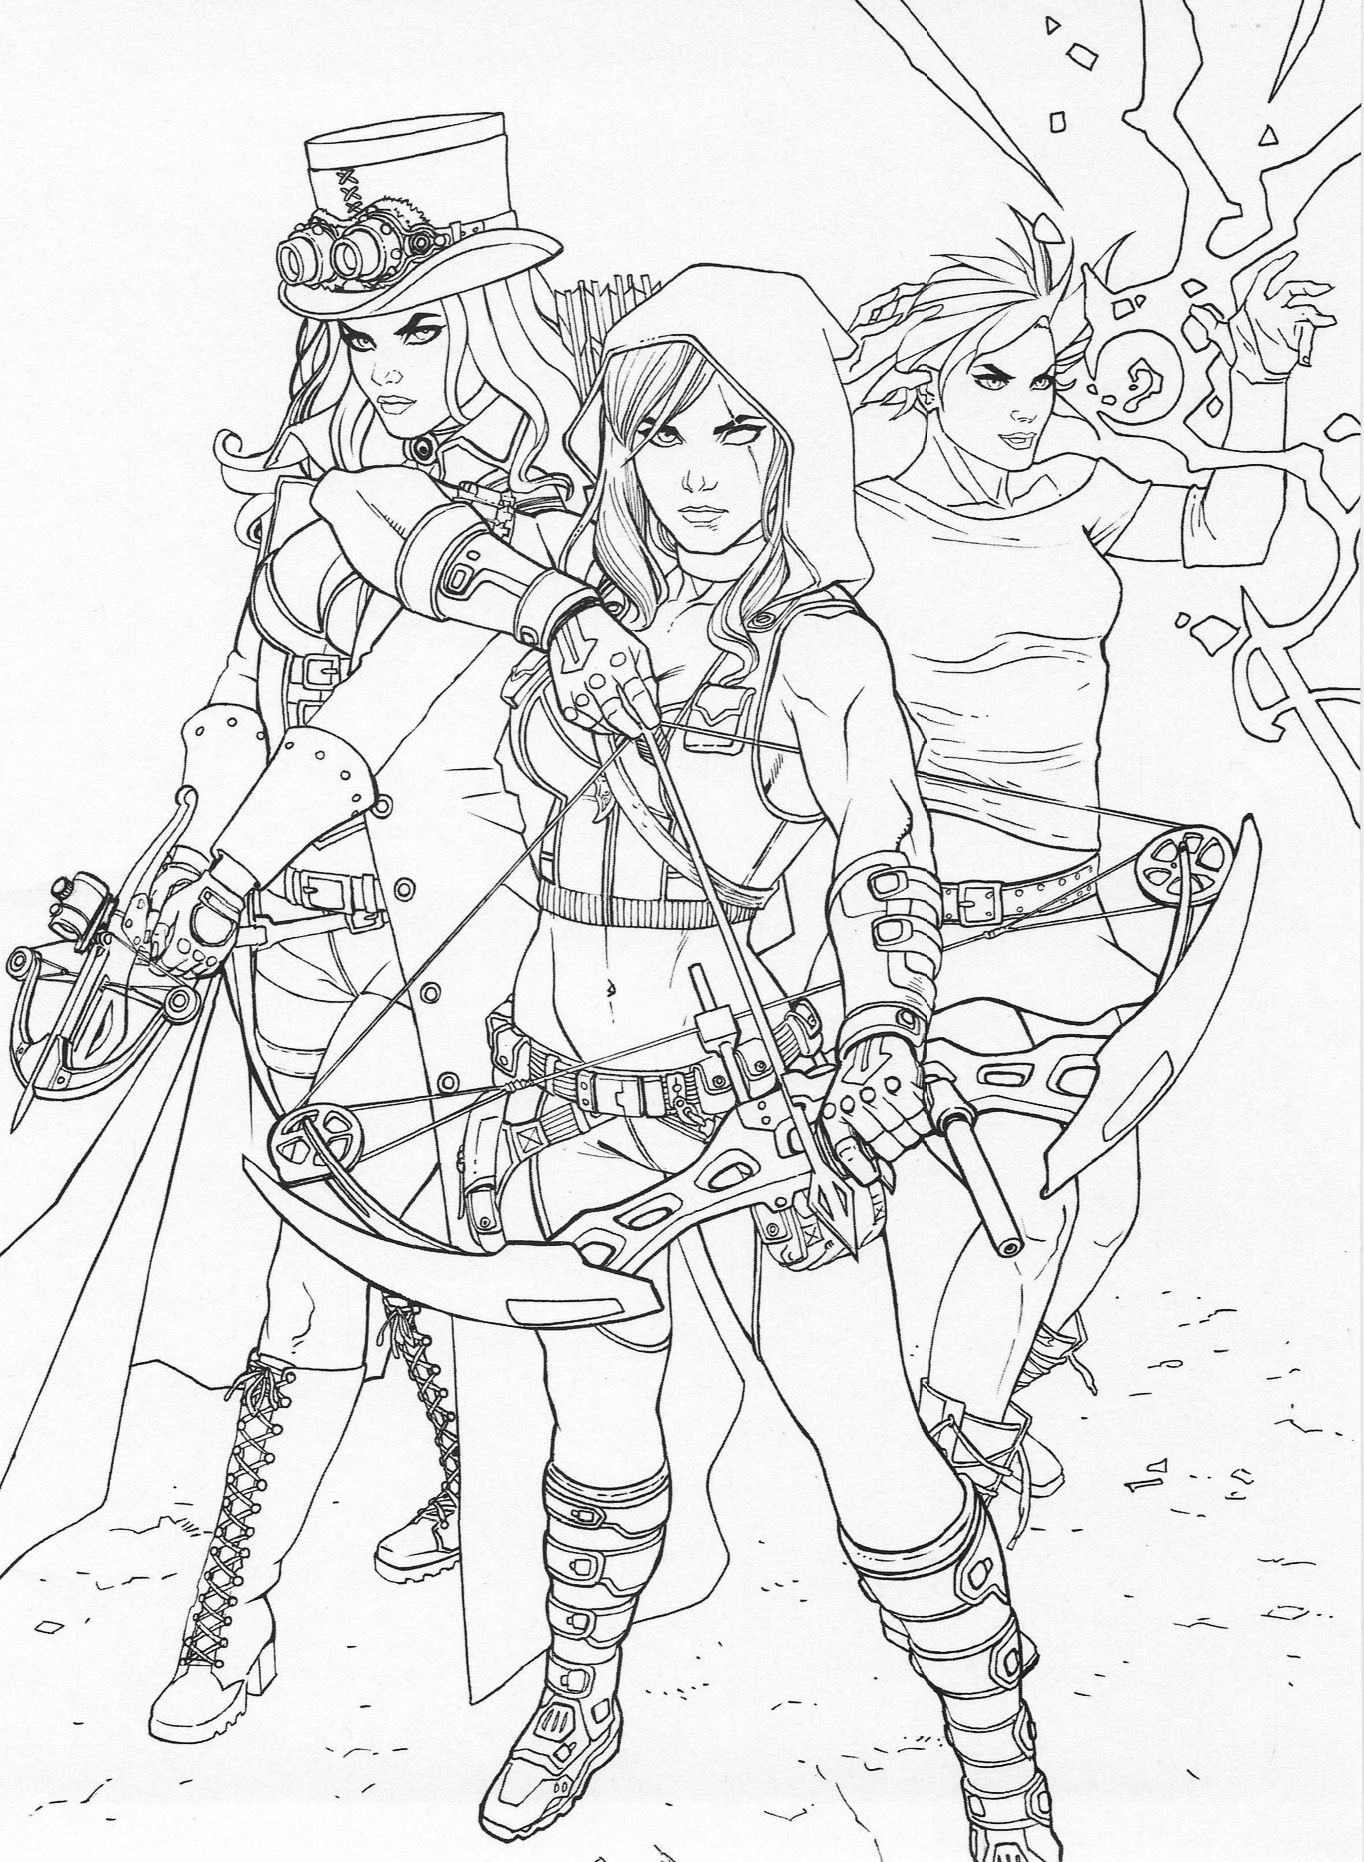 Steampunk coloring page | Steampunk Coloring Pages for Adults ...